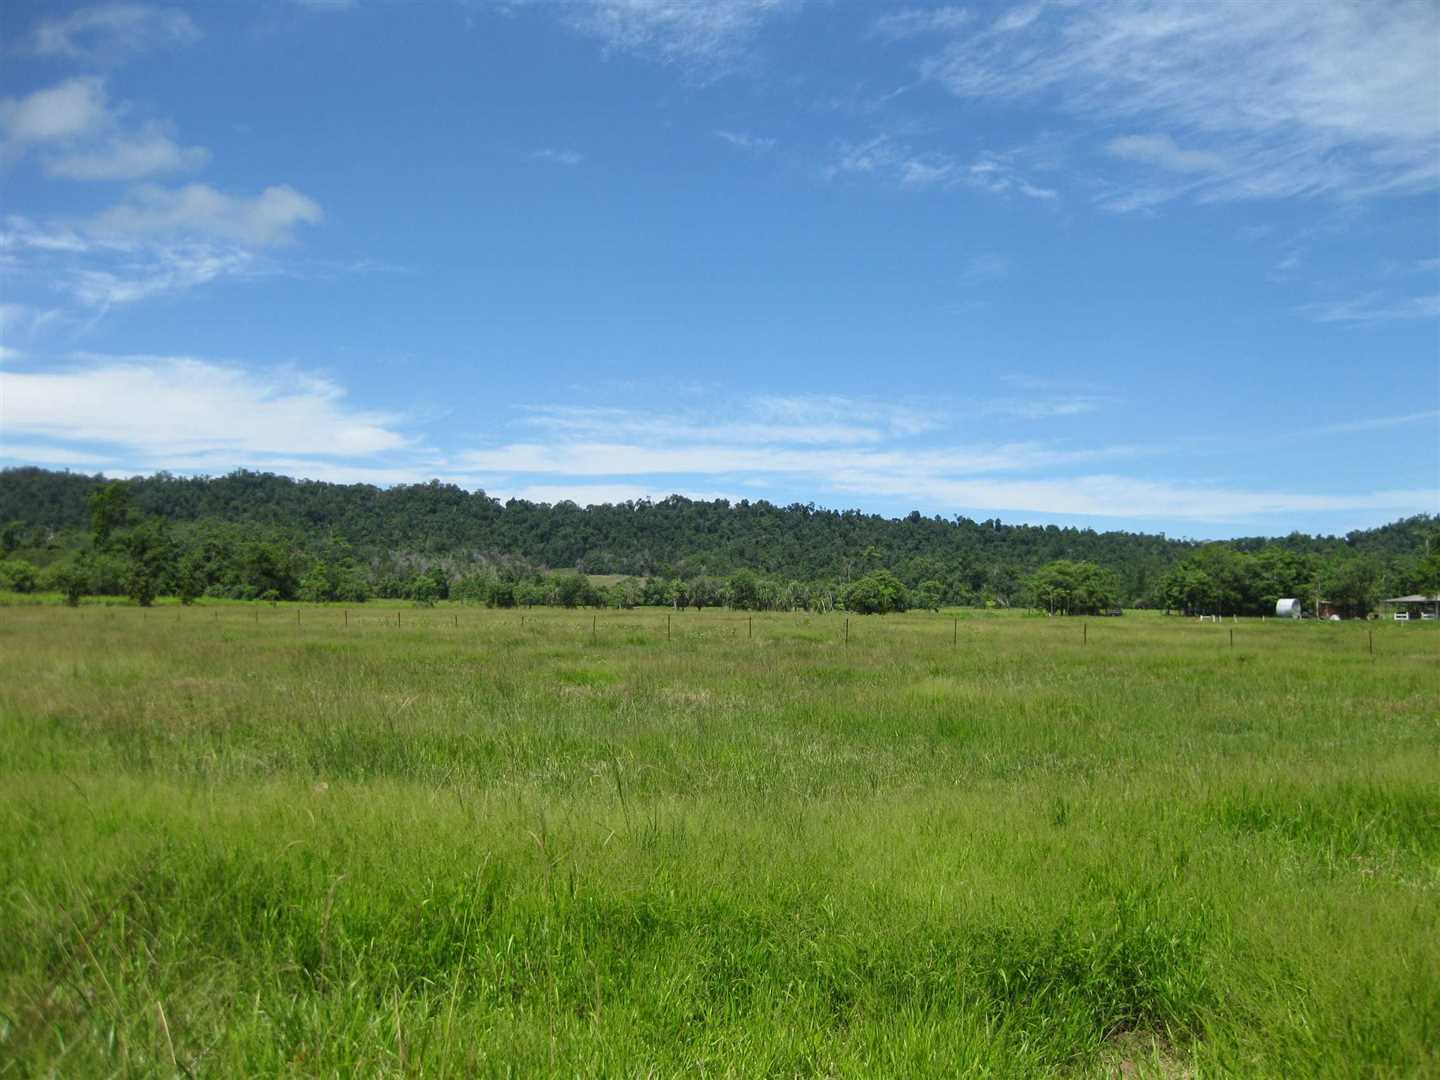 View of part of property showing part of the paddocks and pasture area, photo 1